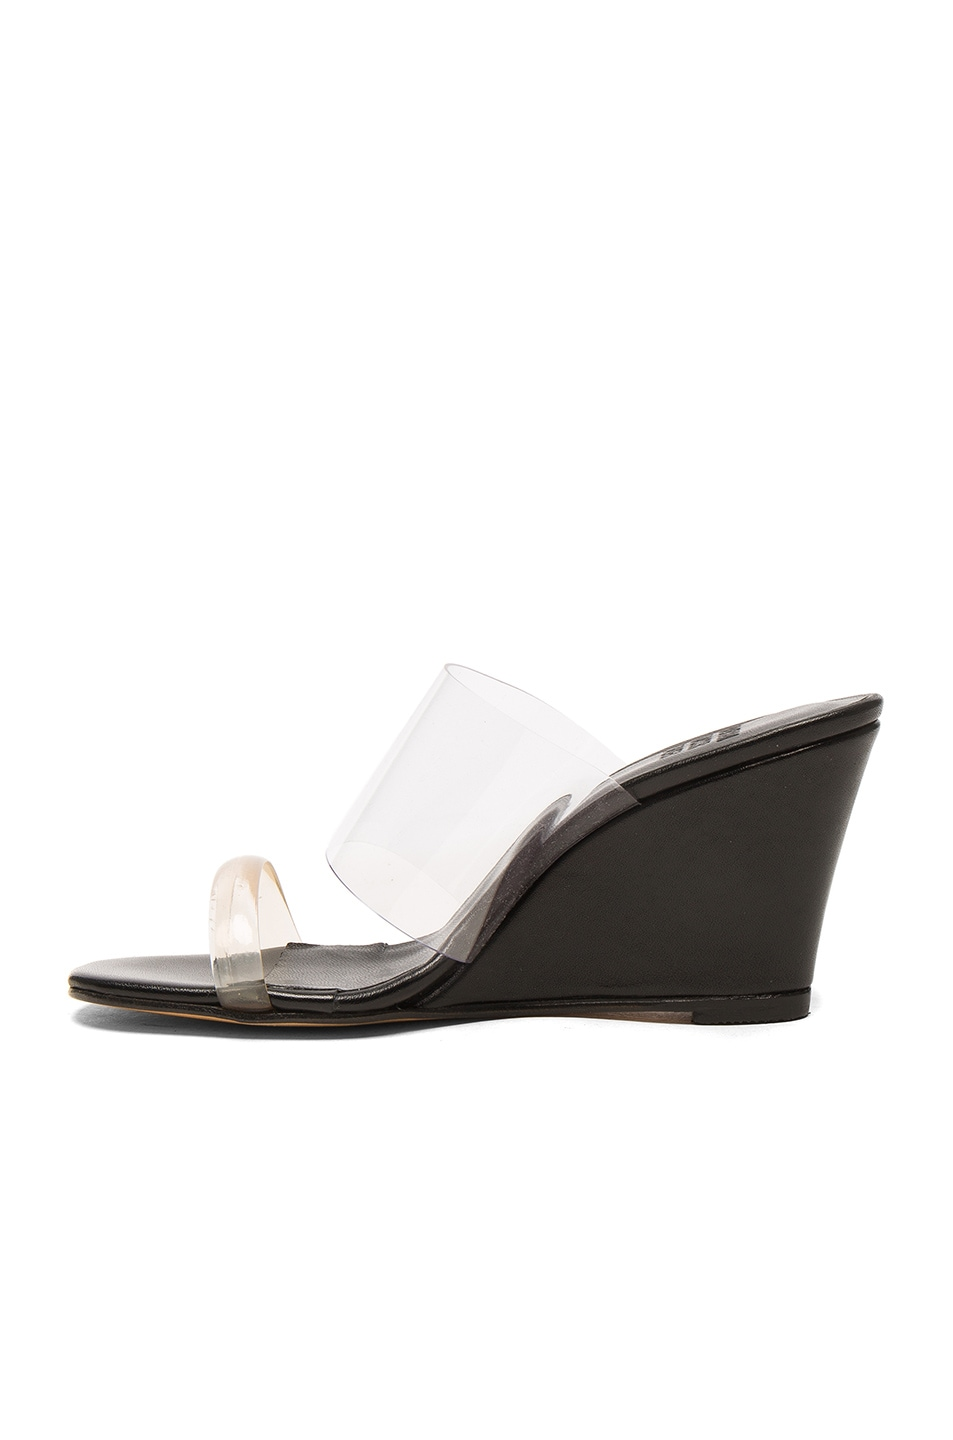 160f262a22 Image 5 of Maryam Nassir Zadeh PVC Olympia Wedges in Black